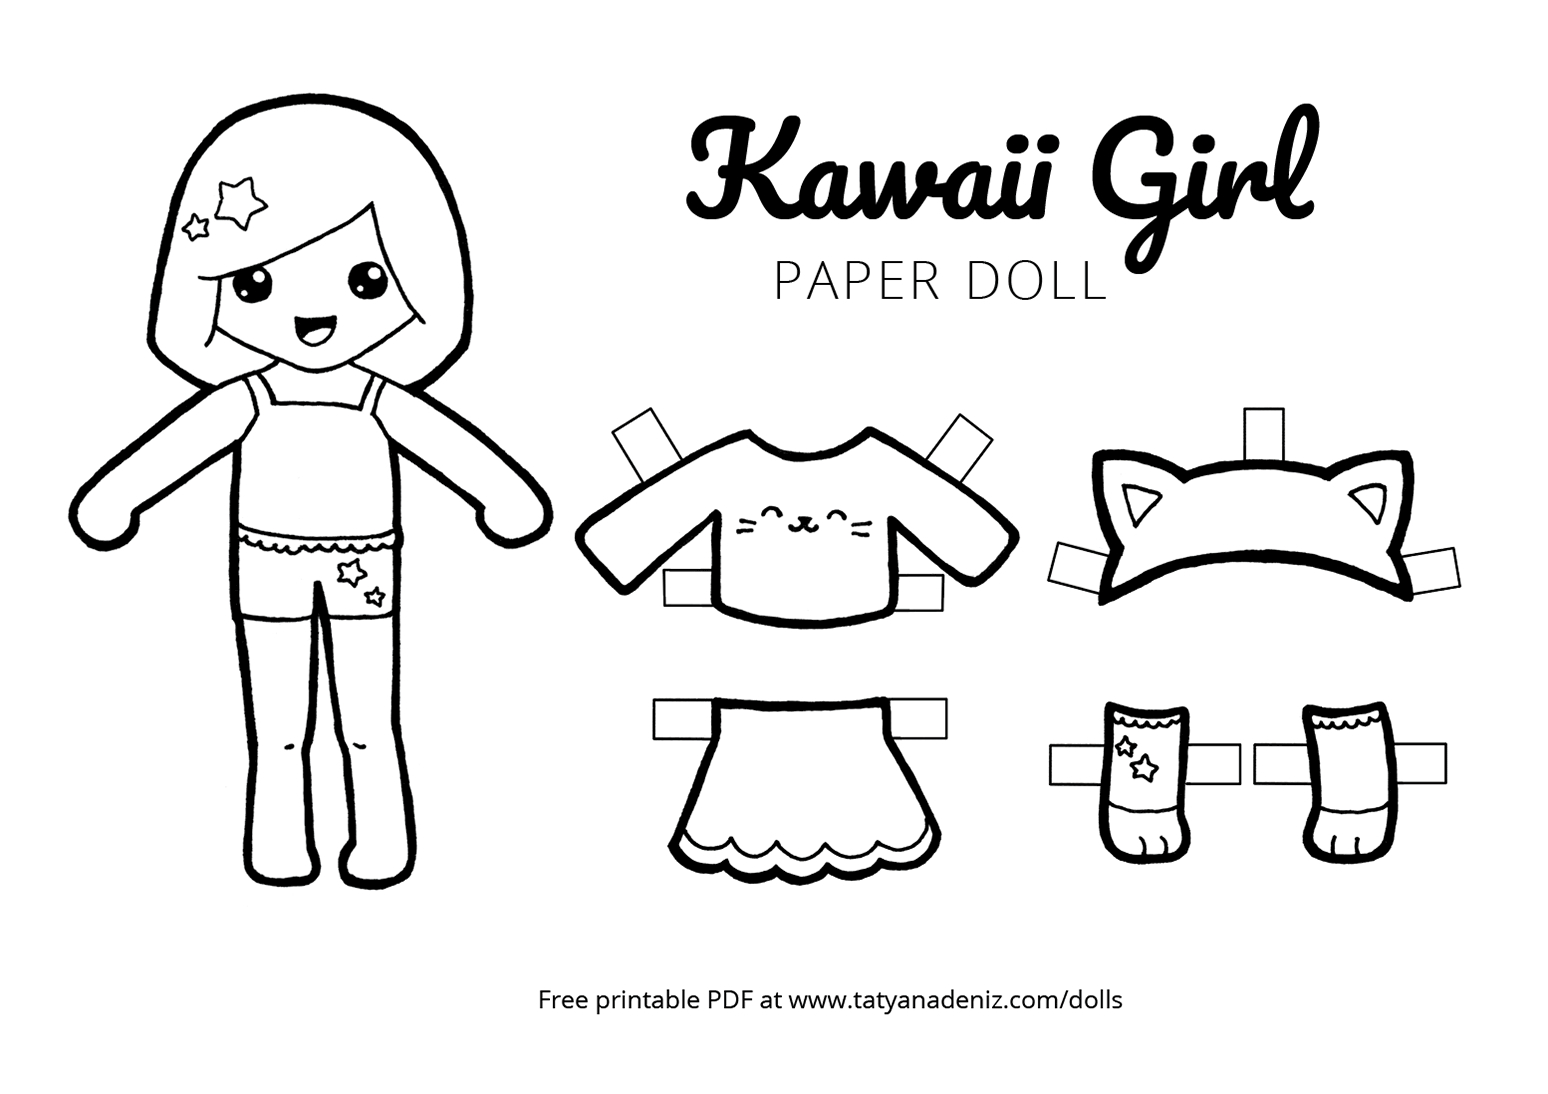 photo about Printable Paper Dolls called Cost-free Printable Kawaii Paper Dolls Colouring Internet pages - No cost